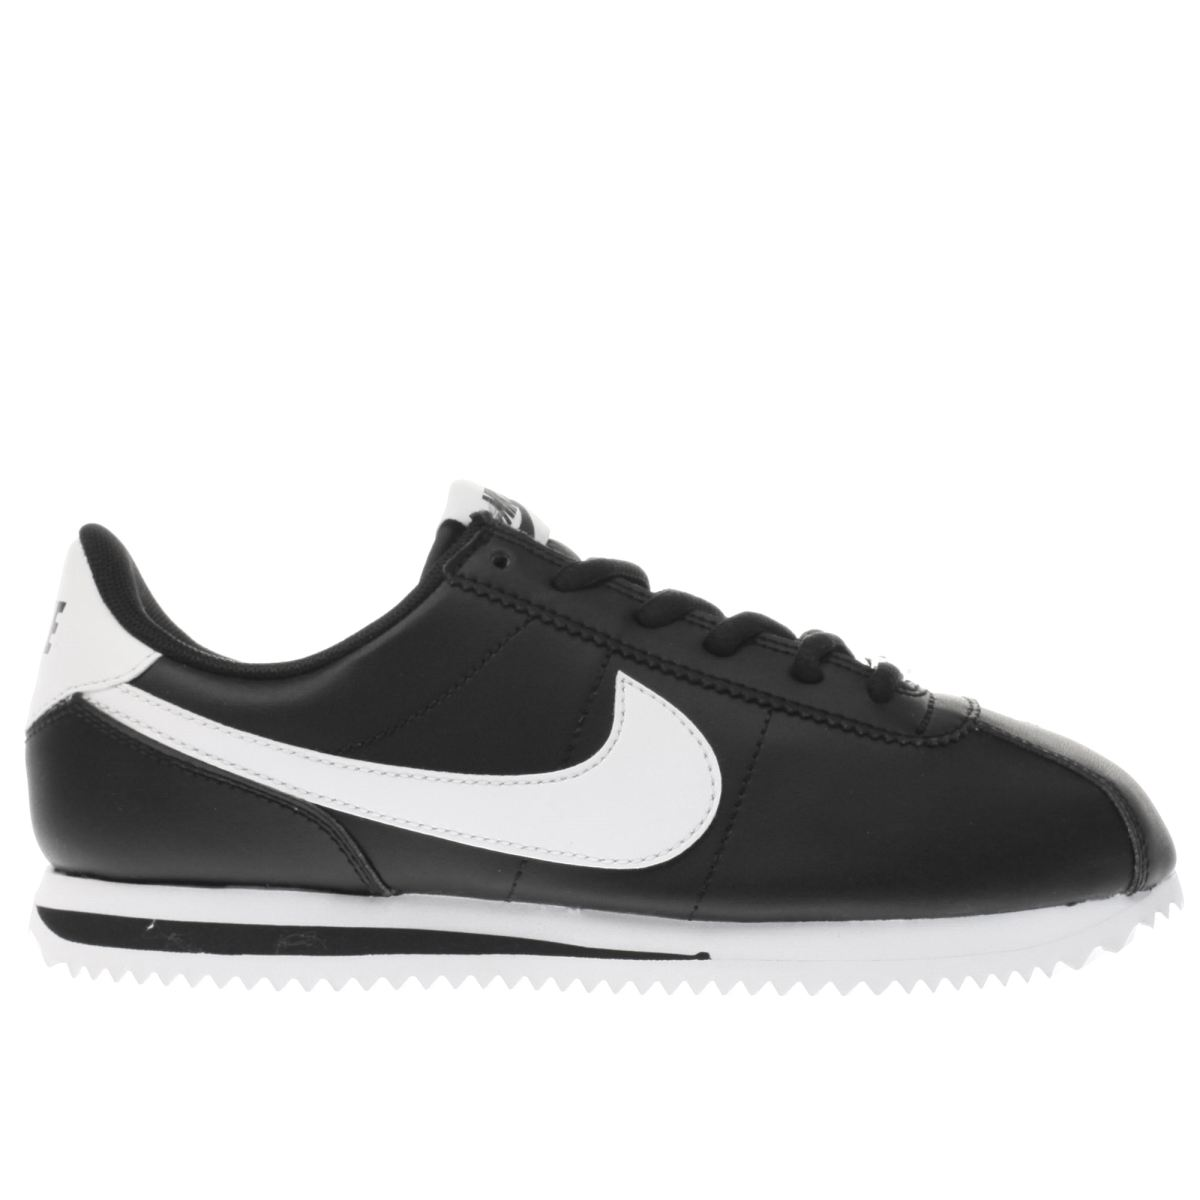 nike black cortez basic Youth Trainers